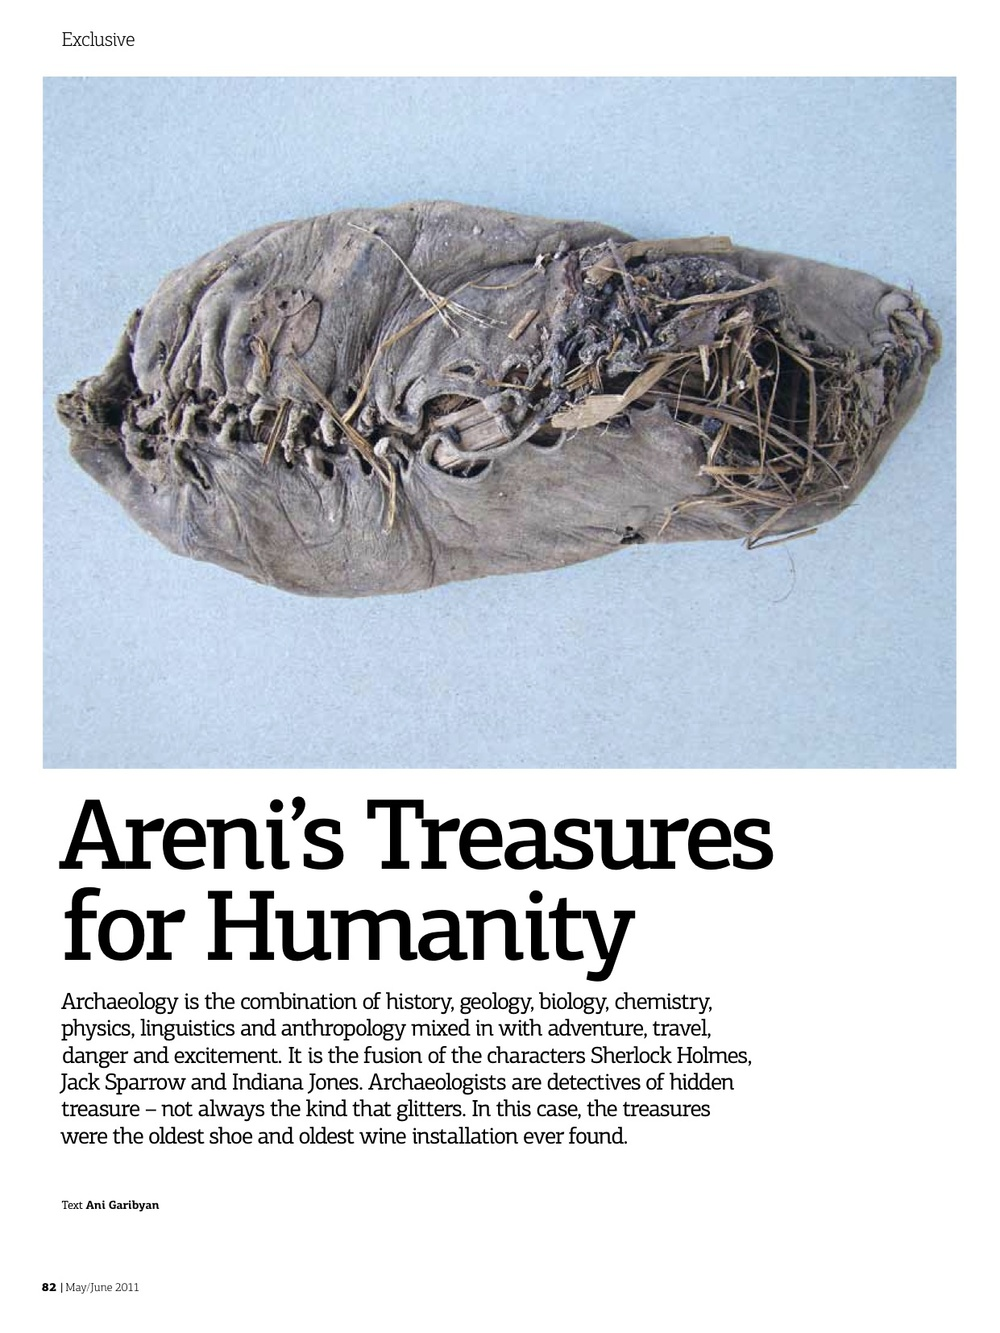 Areni's Treasures for Humanity    Dig deeper into the ancient world of wine, shoes and historic rituals with Dr. Gregory Areshian of the Cotsen Institute of Archaeology at UCLA